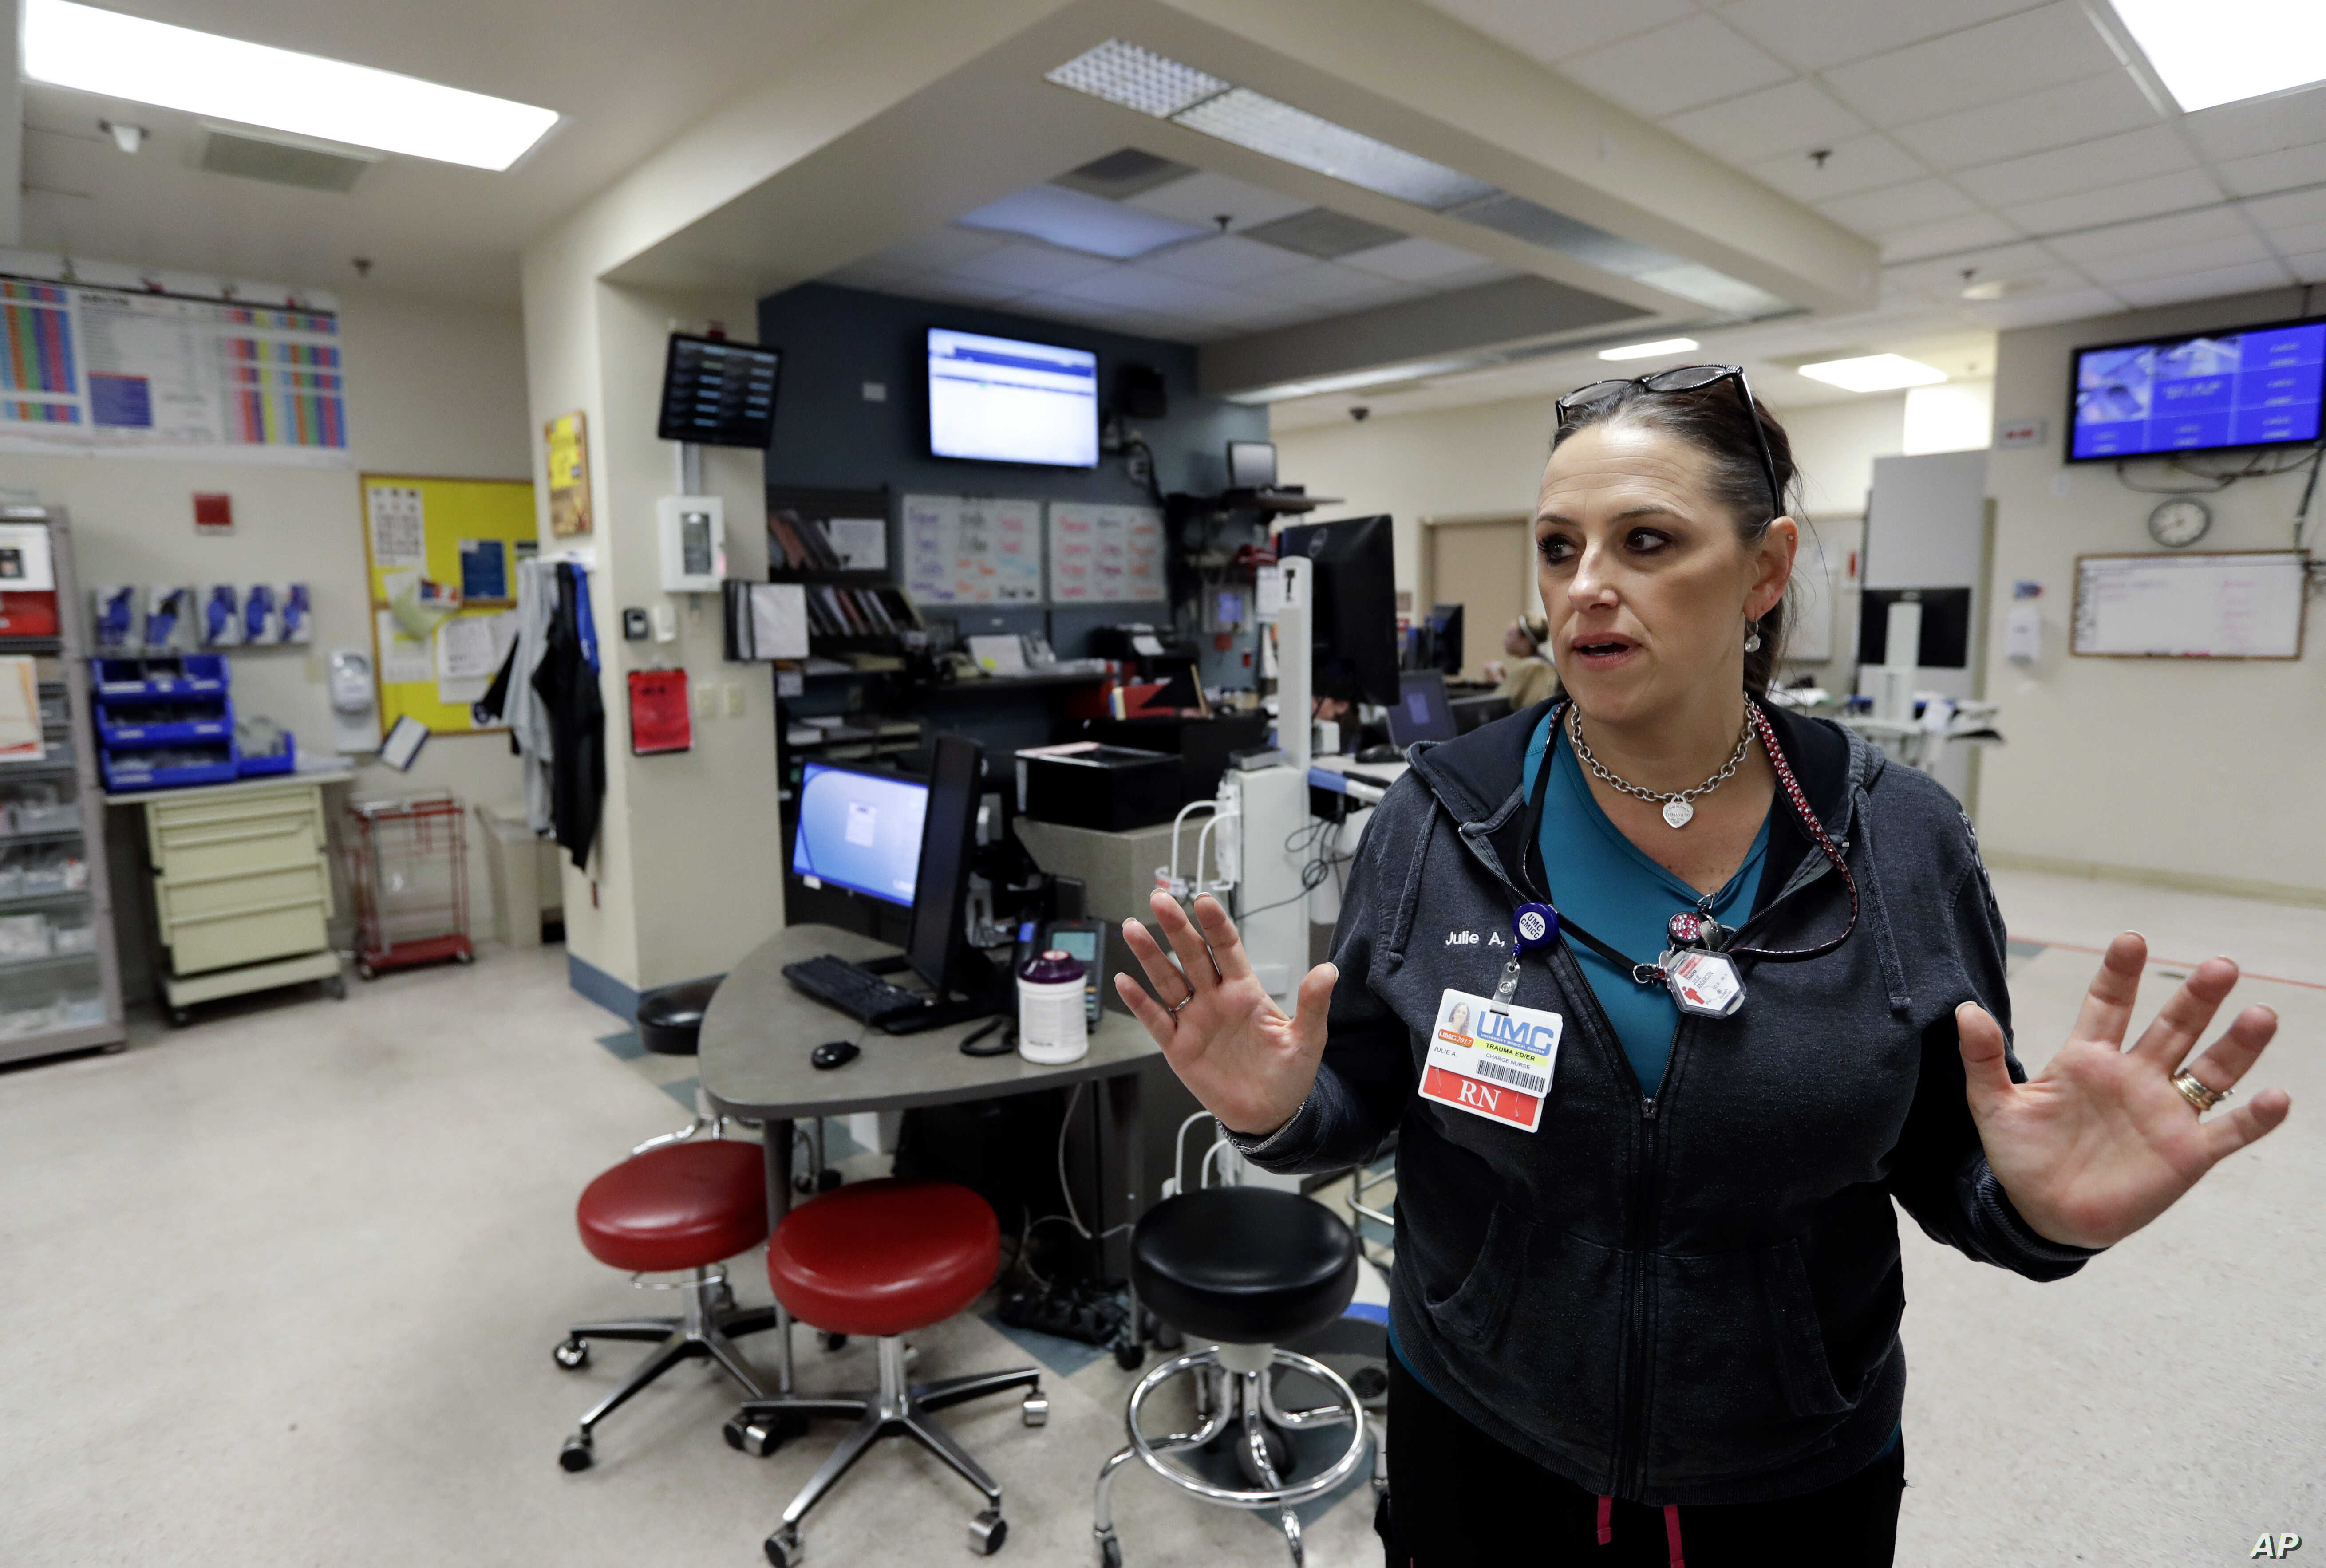 Trauma nurse Julie Anderson, talks about work Sunday night as victims of a mass shooting began to arrive, in the trauma center at the University Medical Center in Las Vegas.